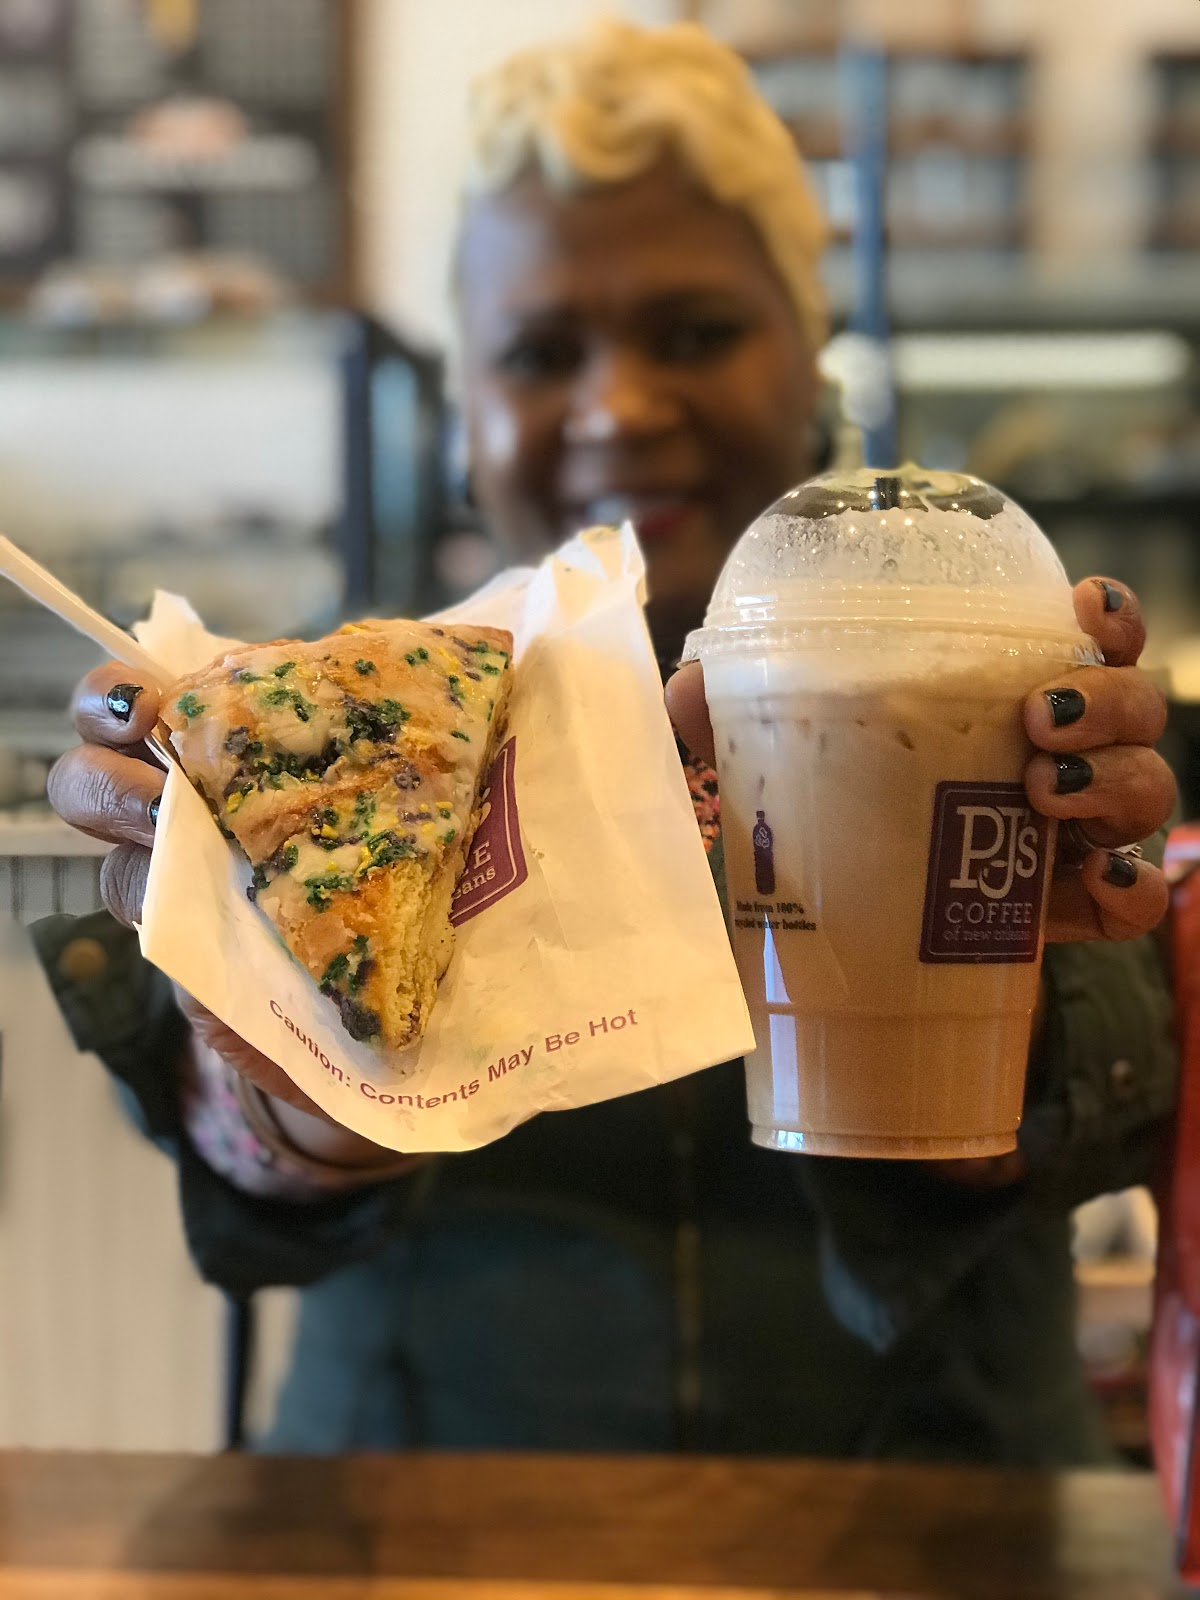 Tangie Bell trying a Mardi Gras King cake and Latte : City Diaries